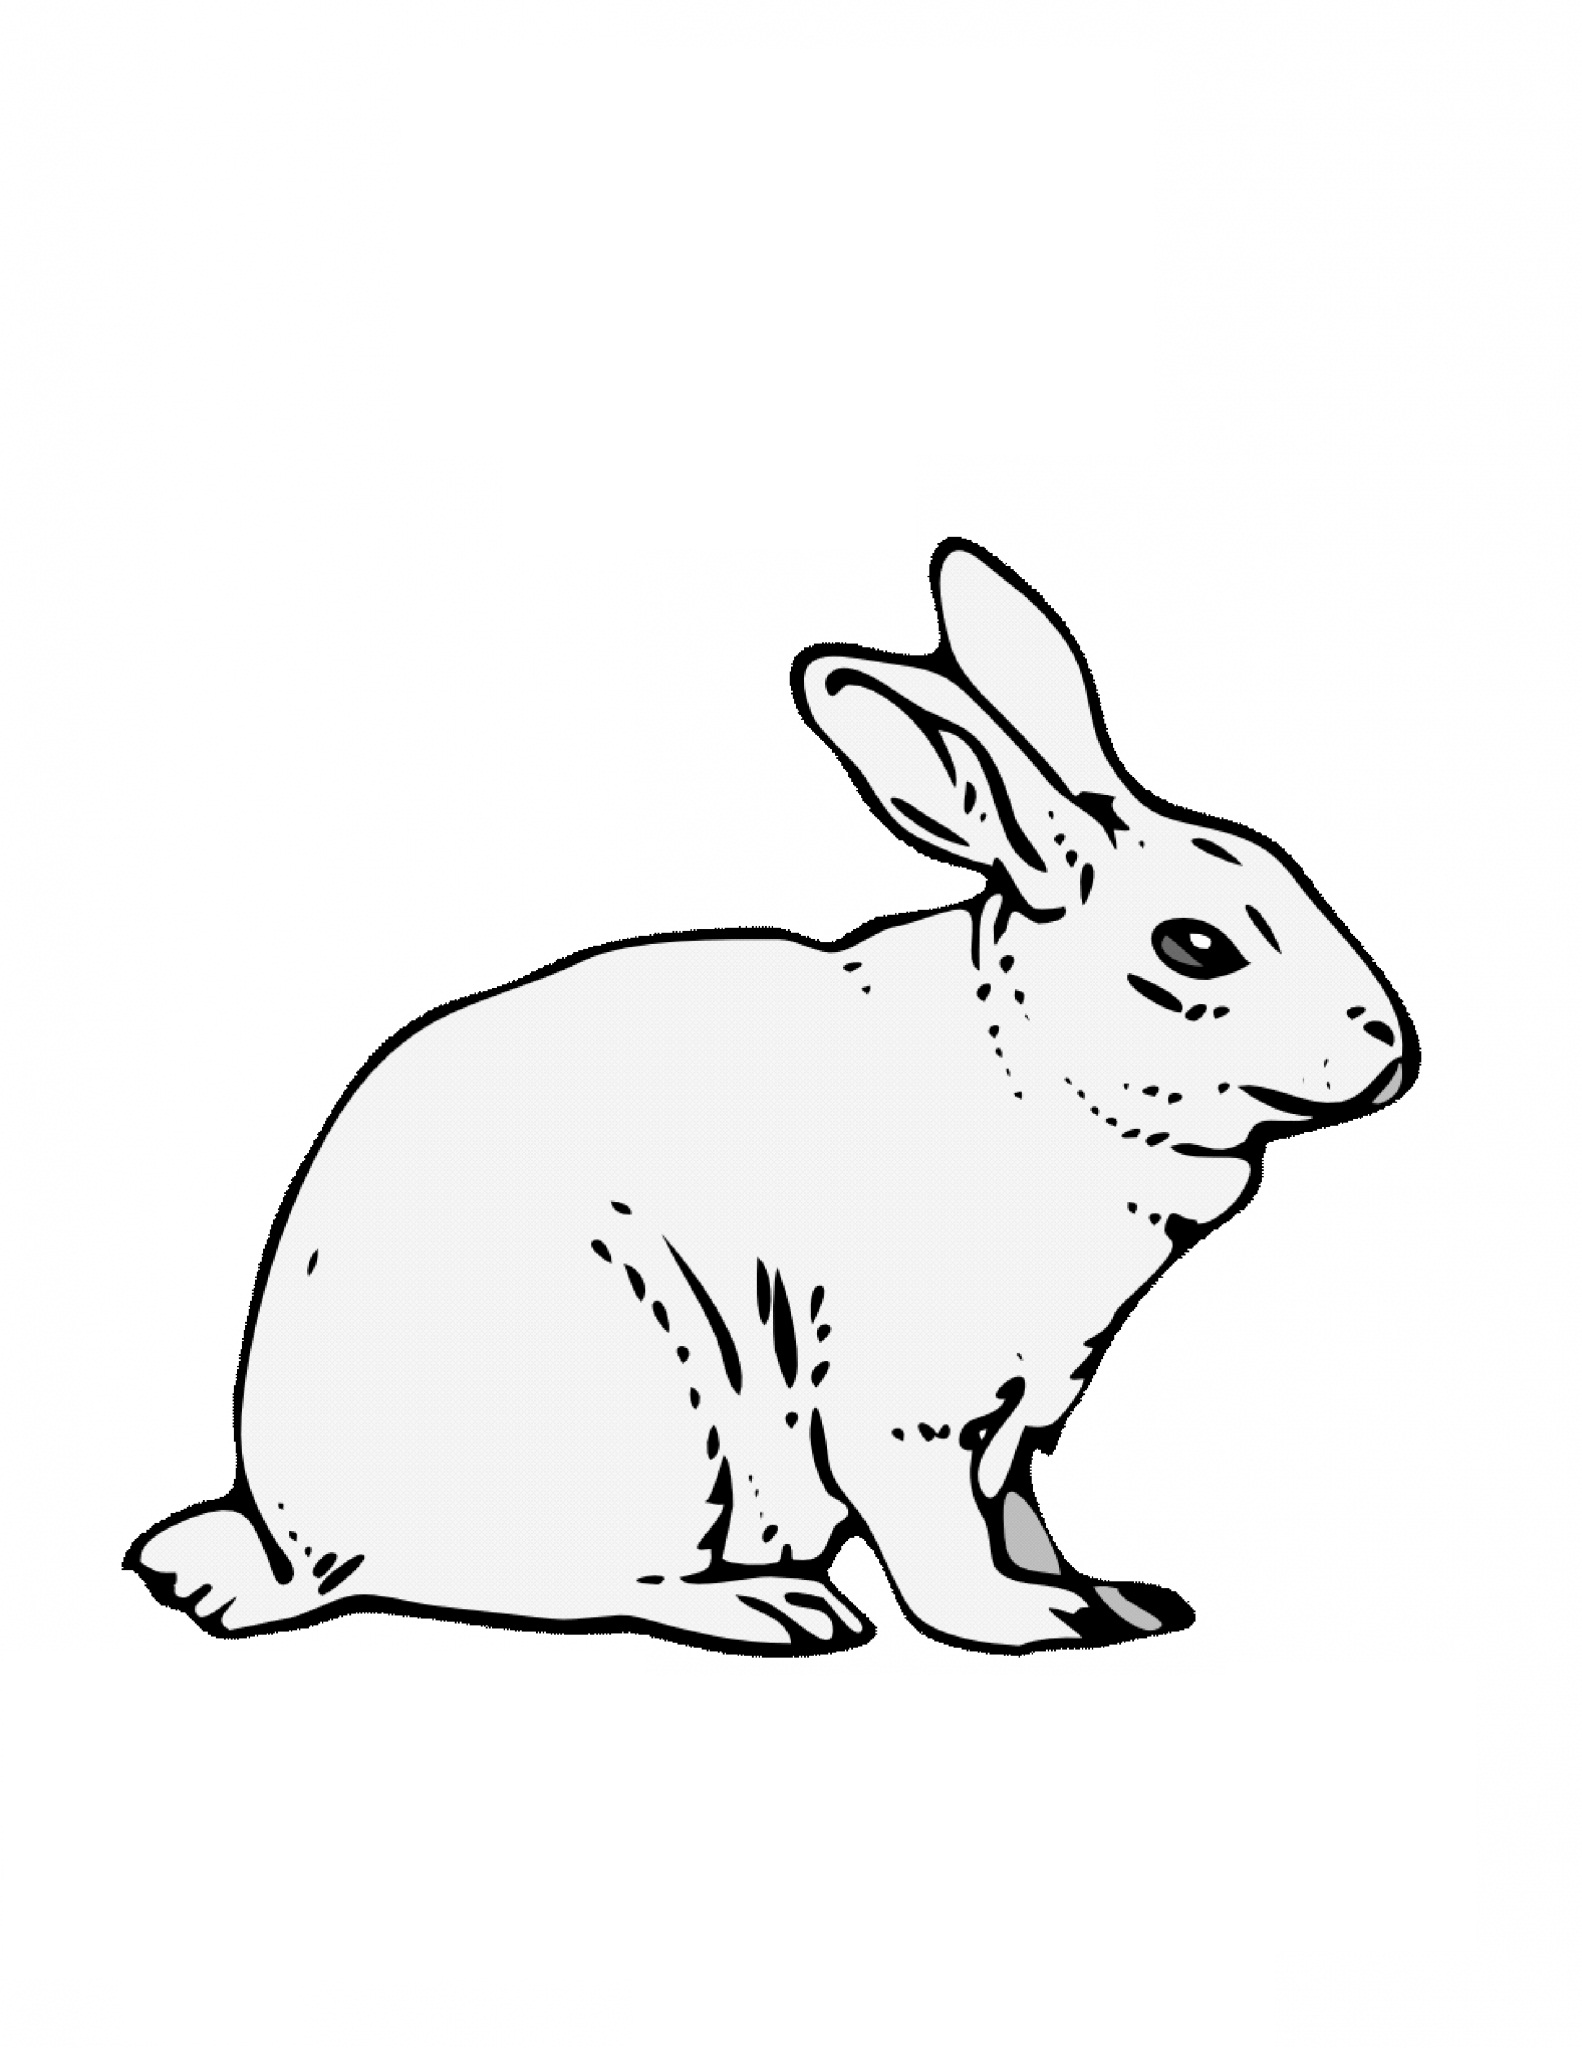 rabbit color page free printable rabbit coloring pages for kids rabbit page color 1 2